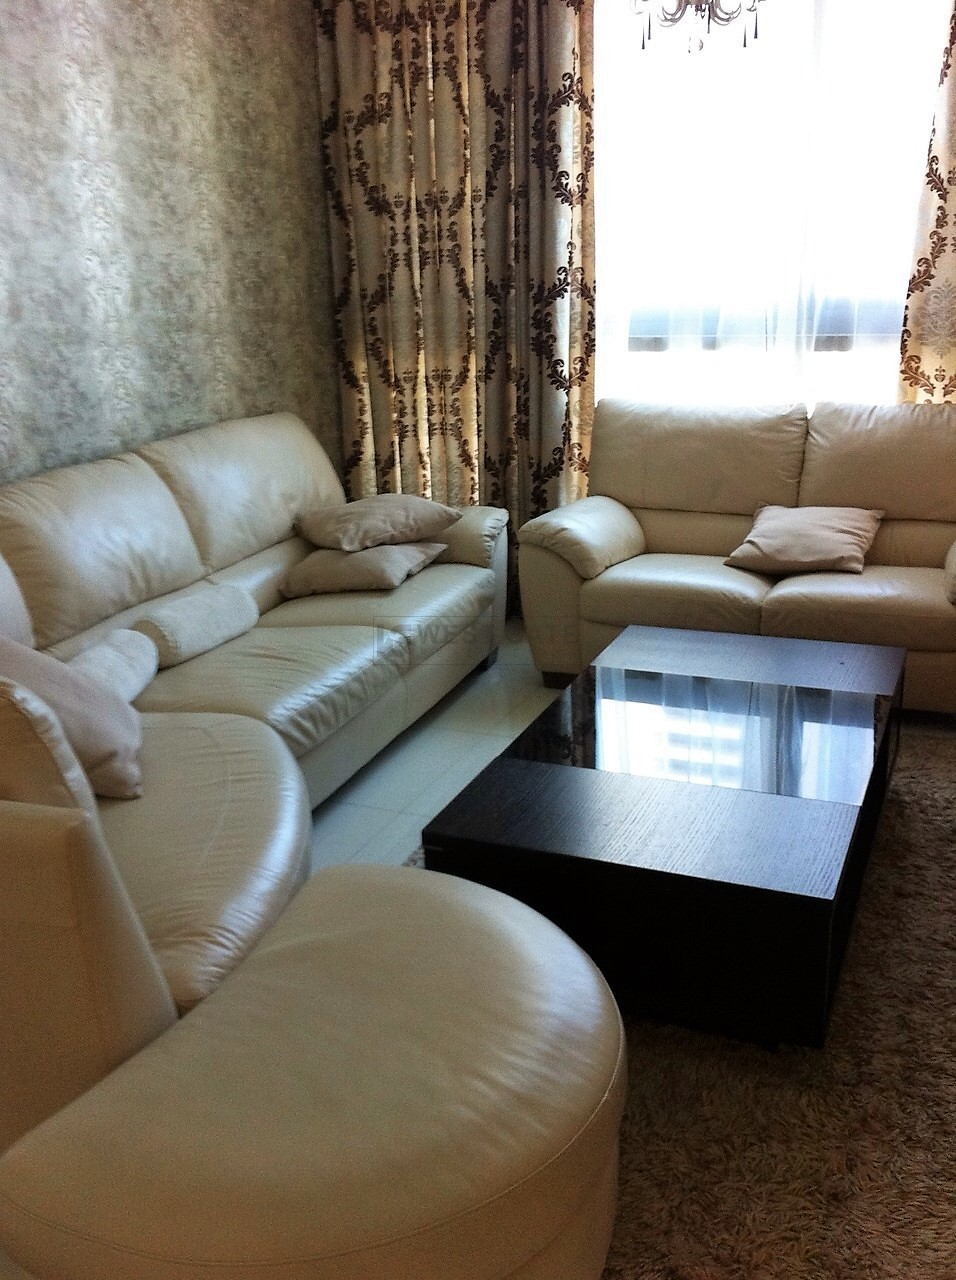 furnished-1br-apt-pool-view-at-the-balcony-iris-blue